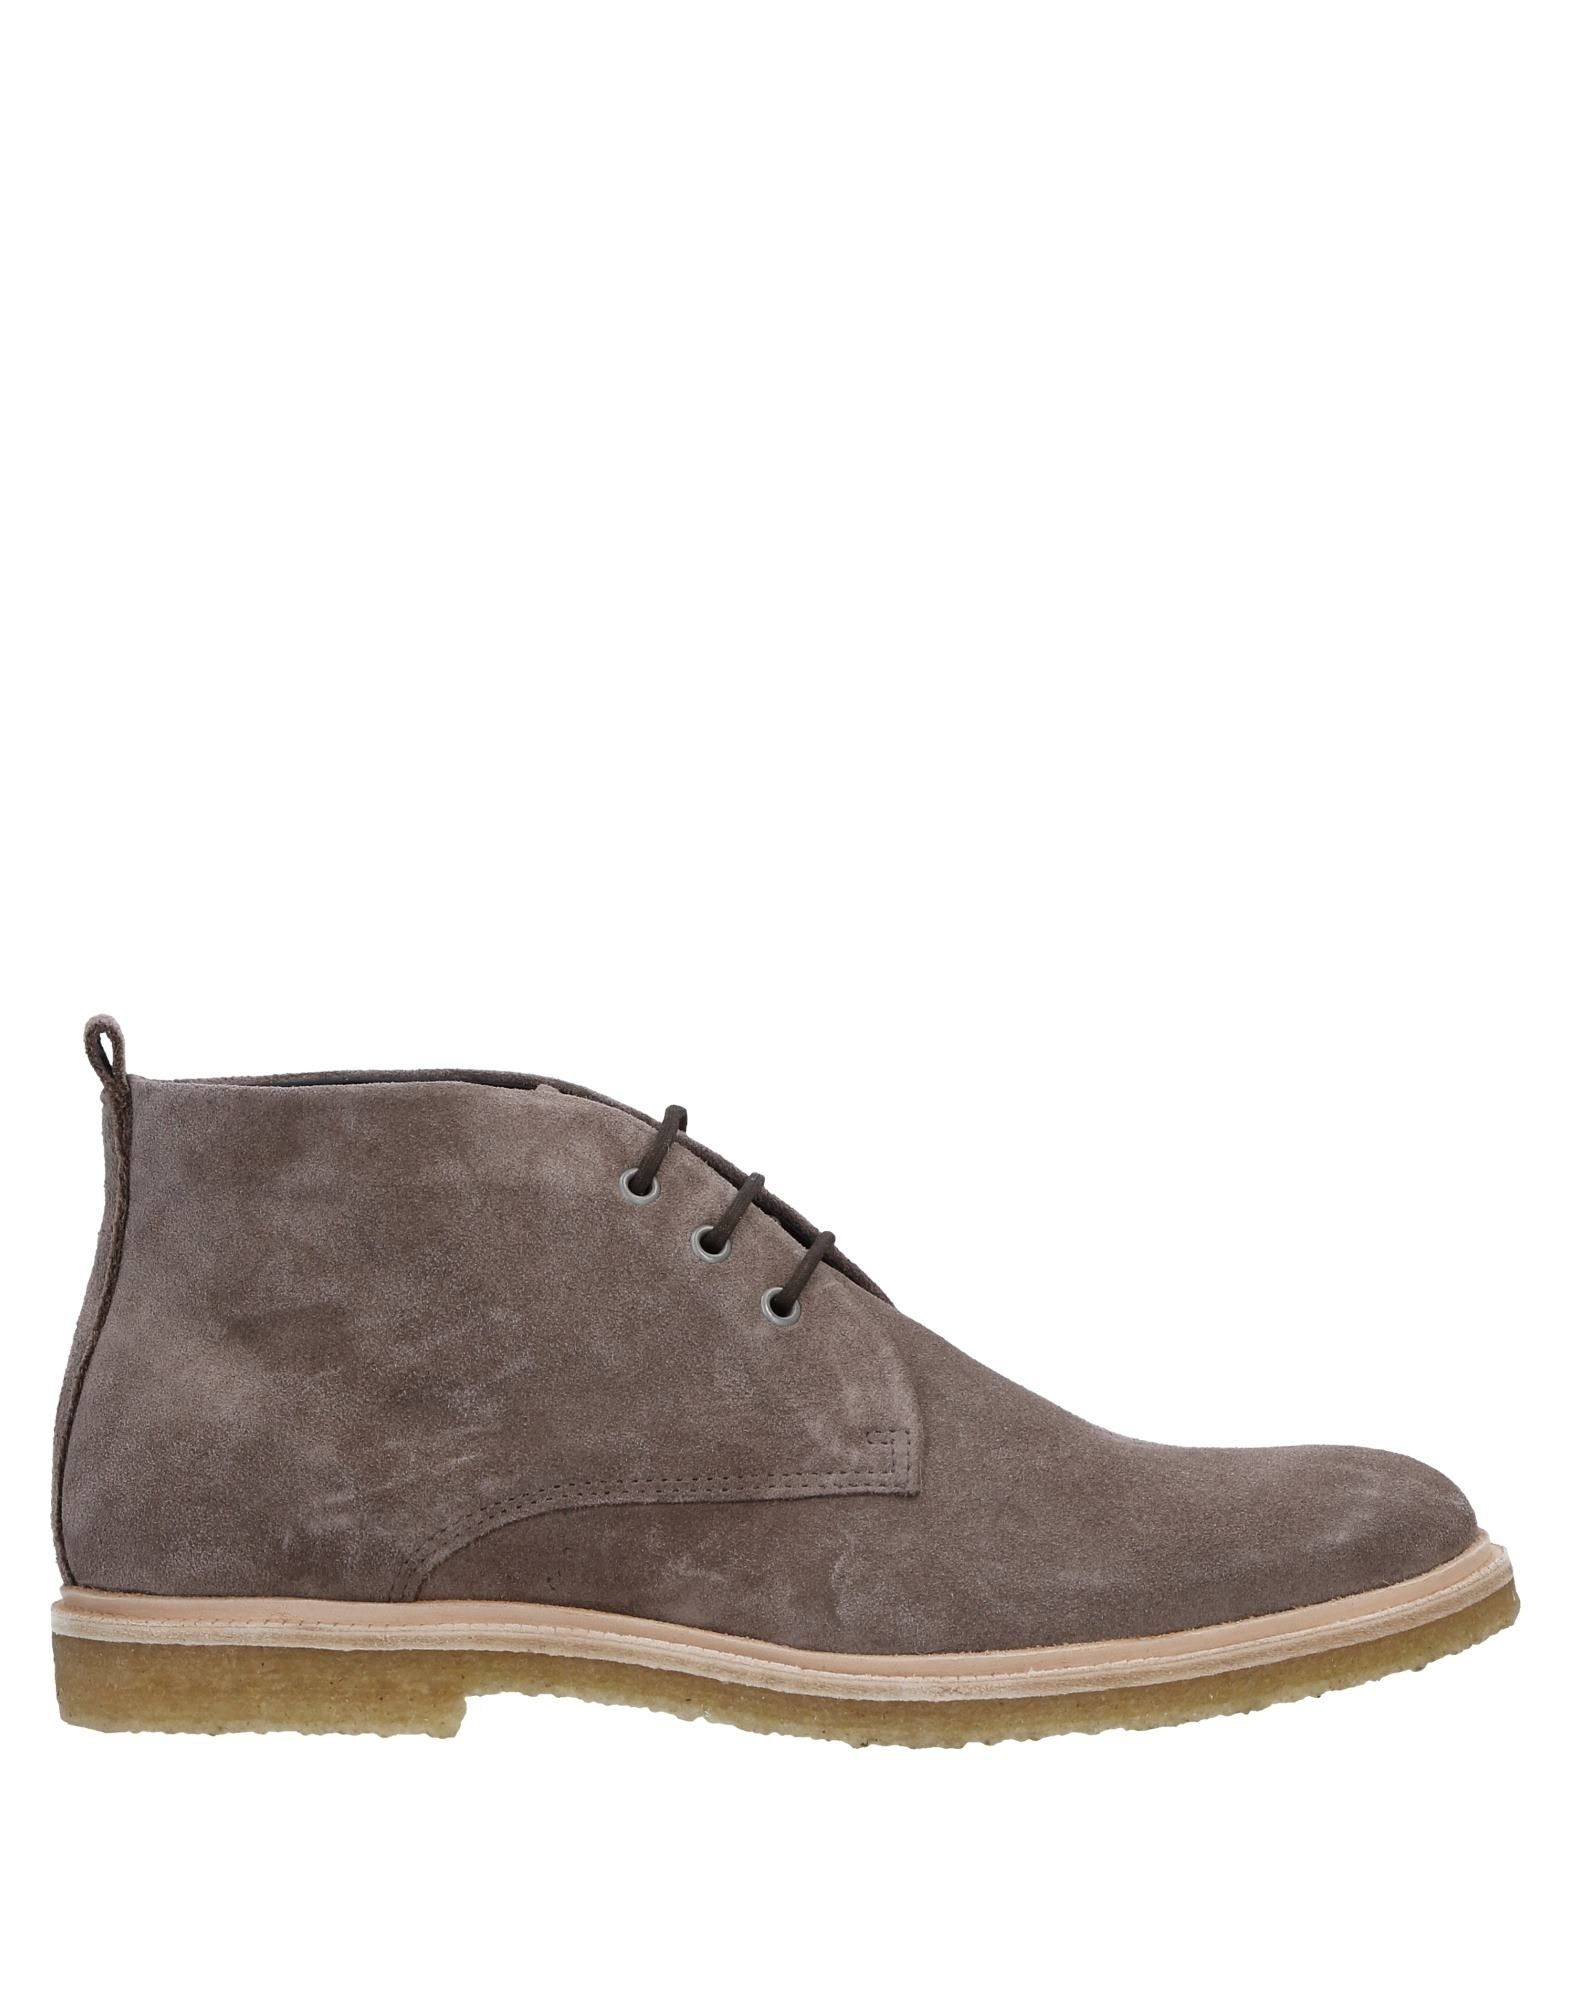 ROYAL REPUBLIQ Boots in Grey